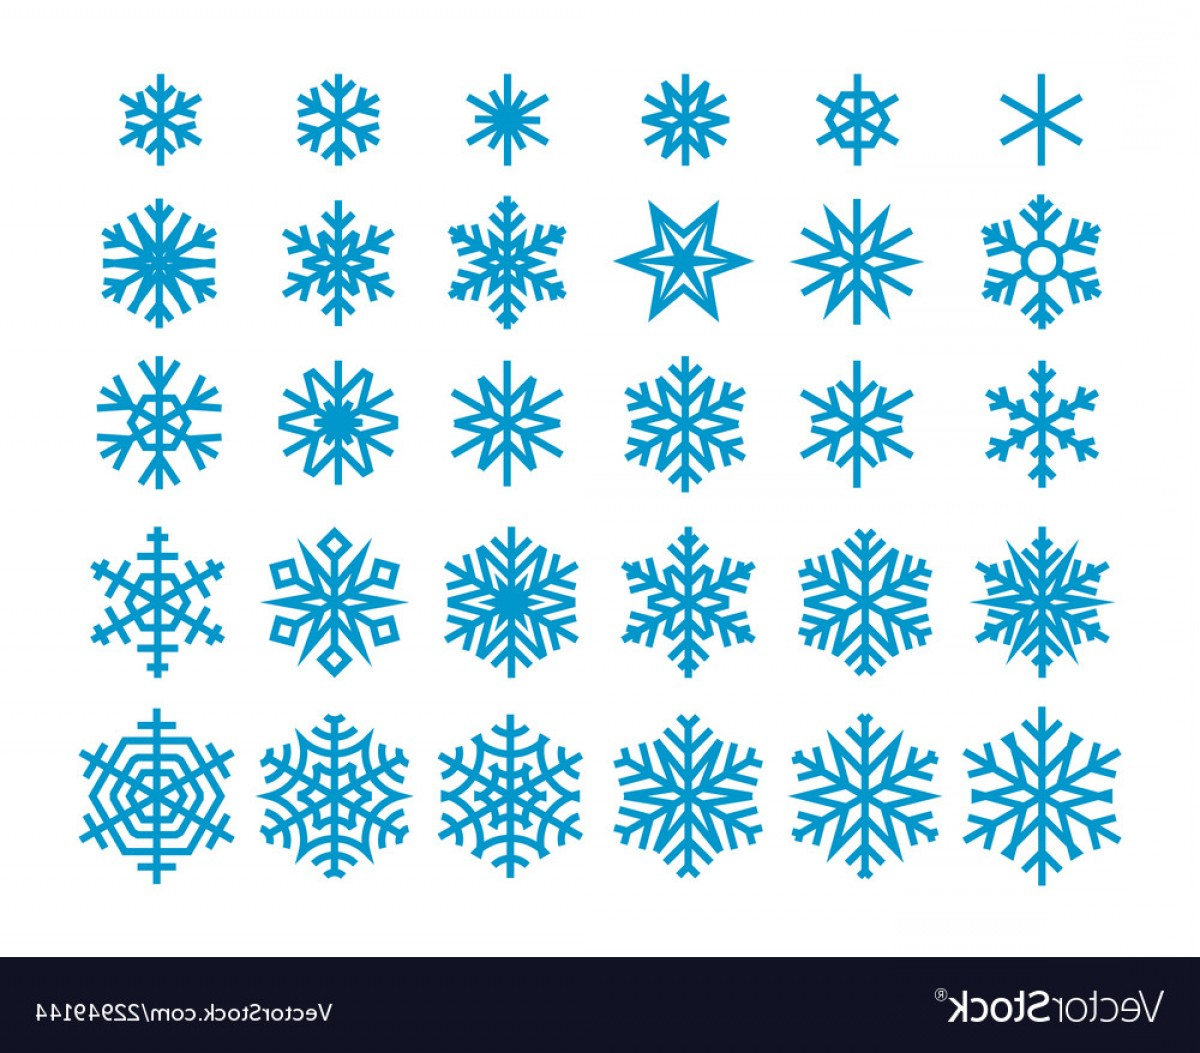 White Snowflake Vector Art: Snowflakes Isolated On White Background Clipart Vector